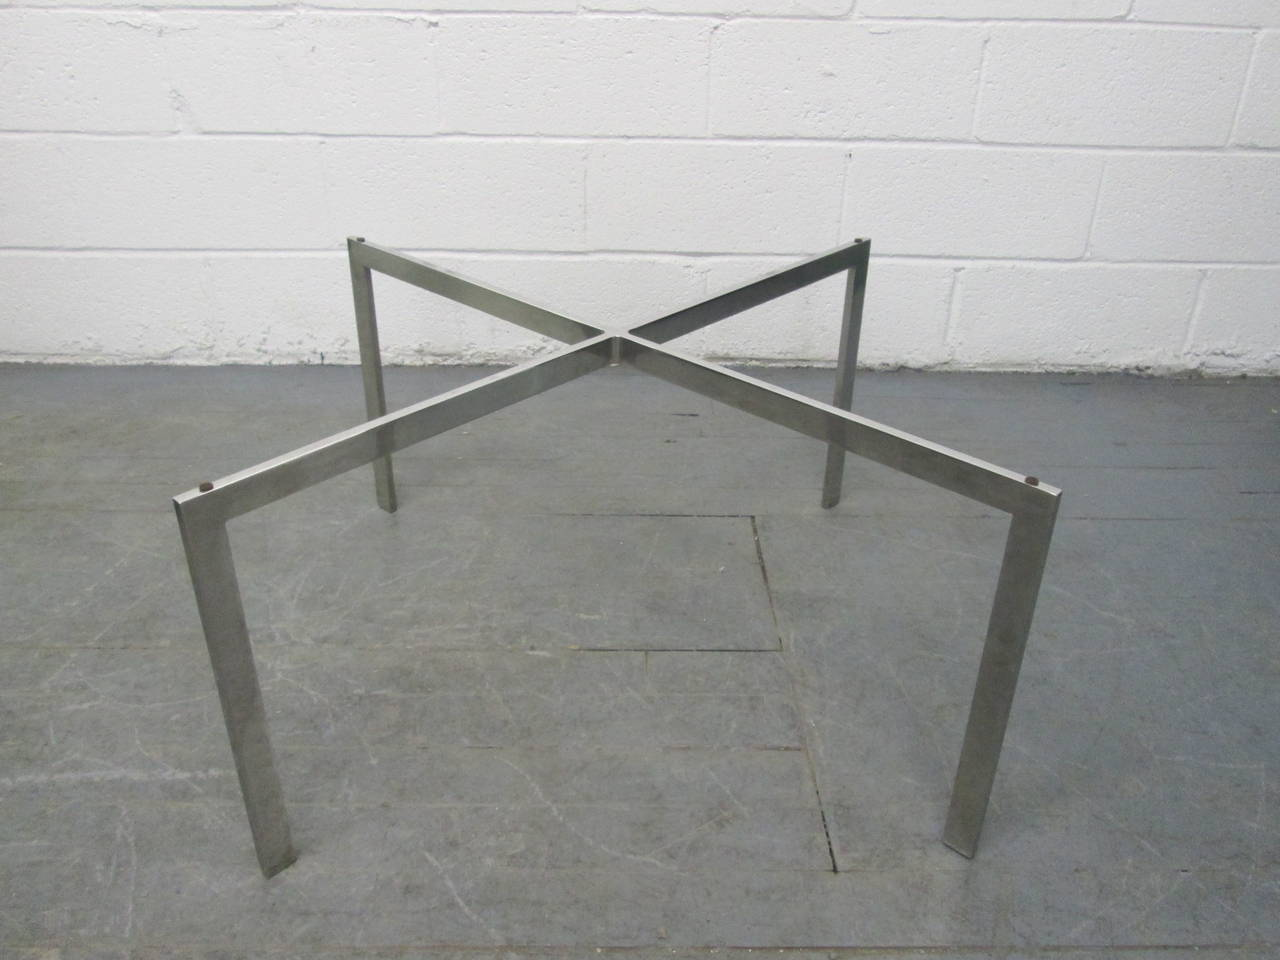 Barcelona table base by mies van der rohe for knoll for sale at 1stdibs - Barcelona table knoll ...